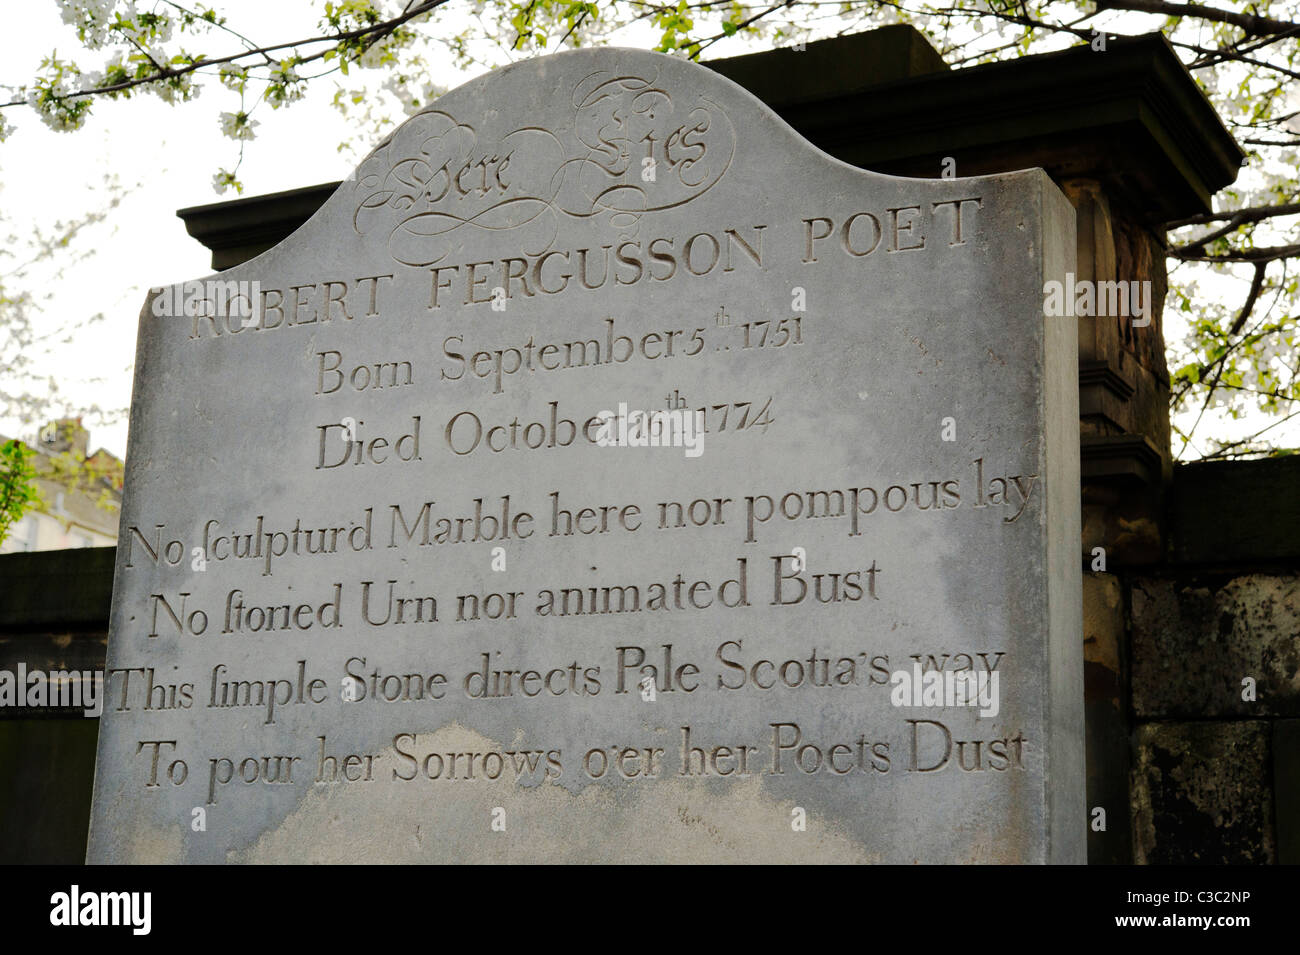 Cemetery of the Kirk of the Canongate, Edinburgh. Tombstone of Robert Fergusson - Stock Image